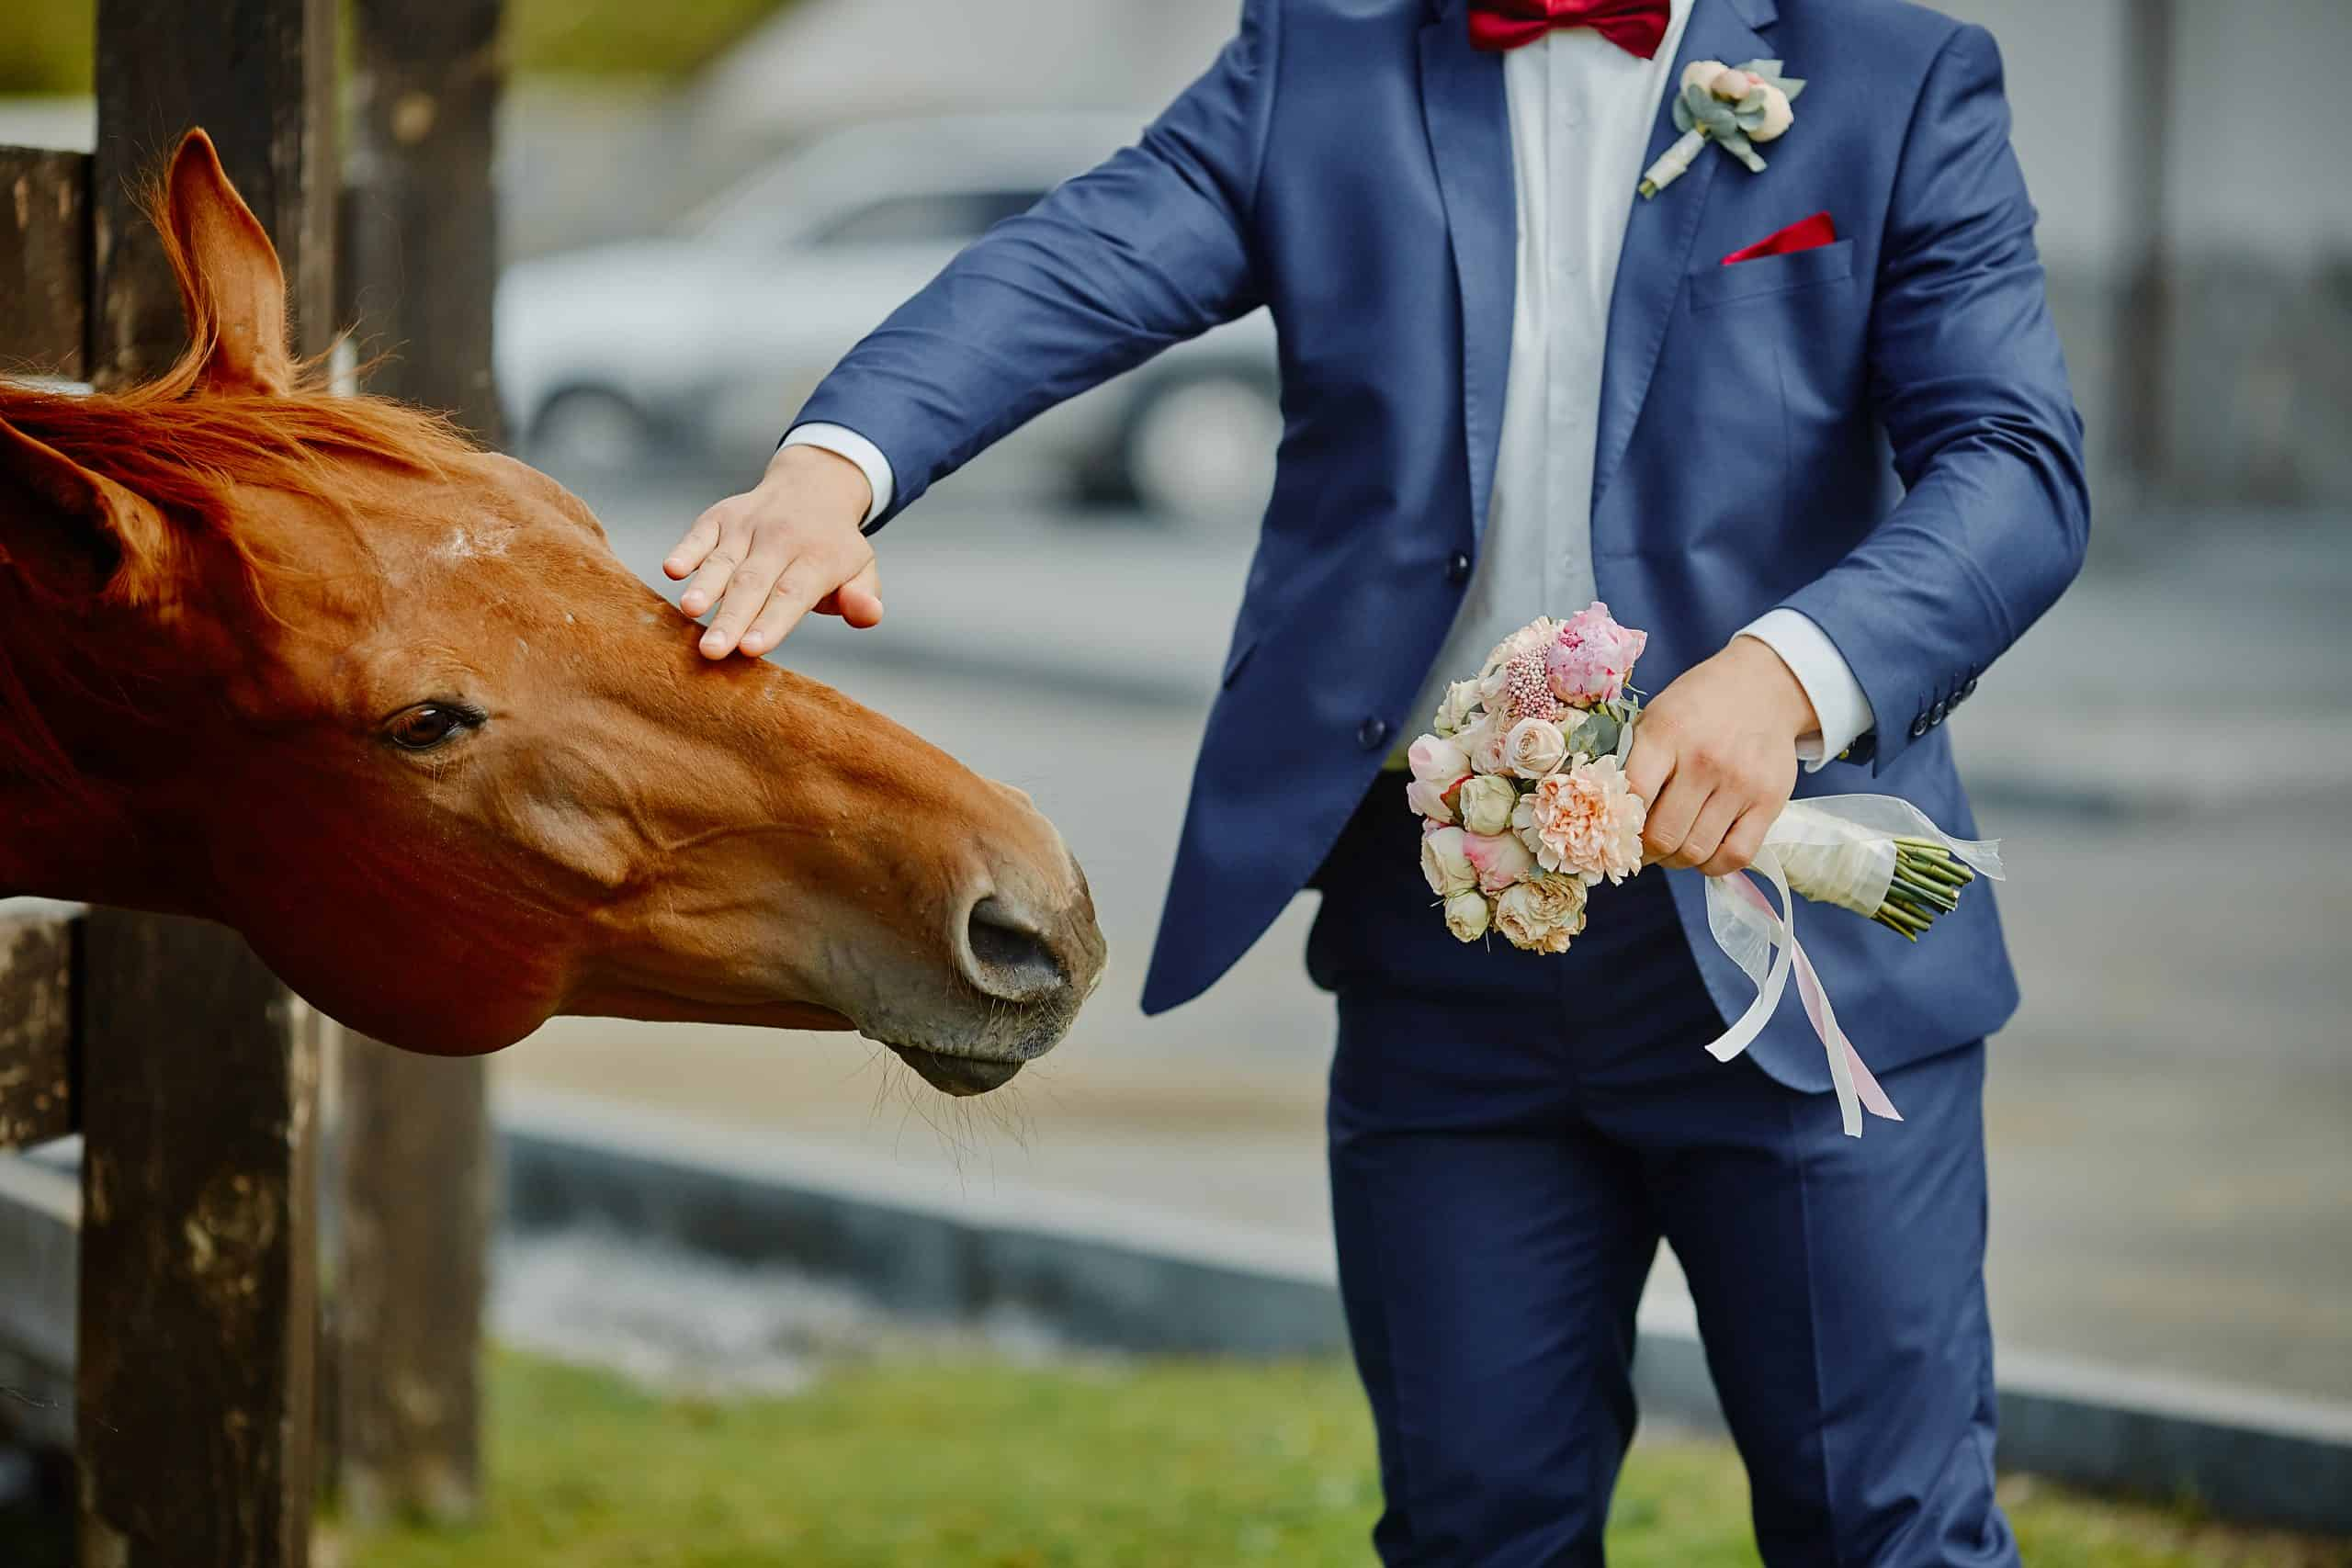 The groom, holding a wedding bouquet in hand, and a horse, who reached out to the bouquets to smell and eat.Funny wedding moment.